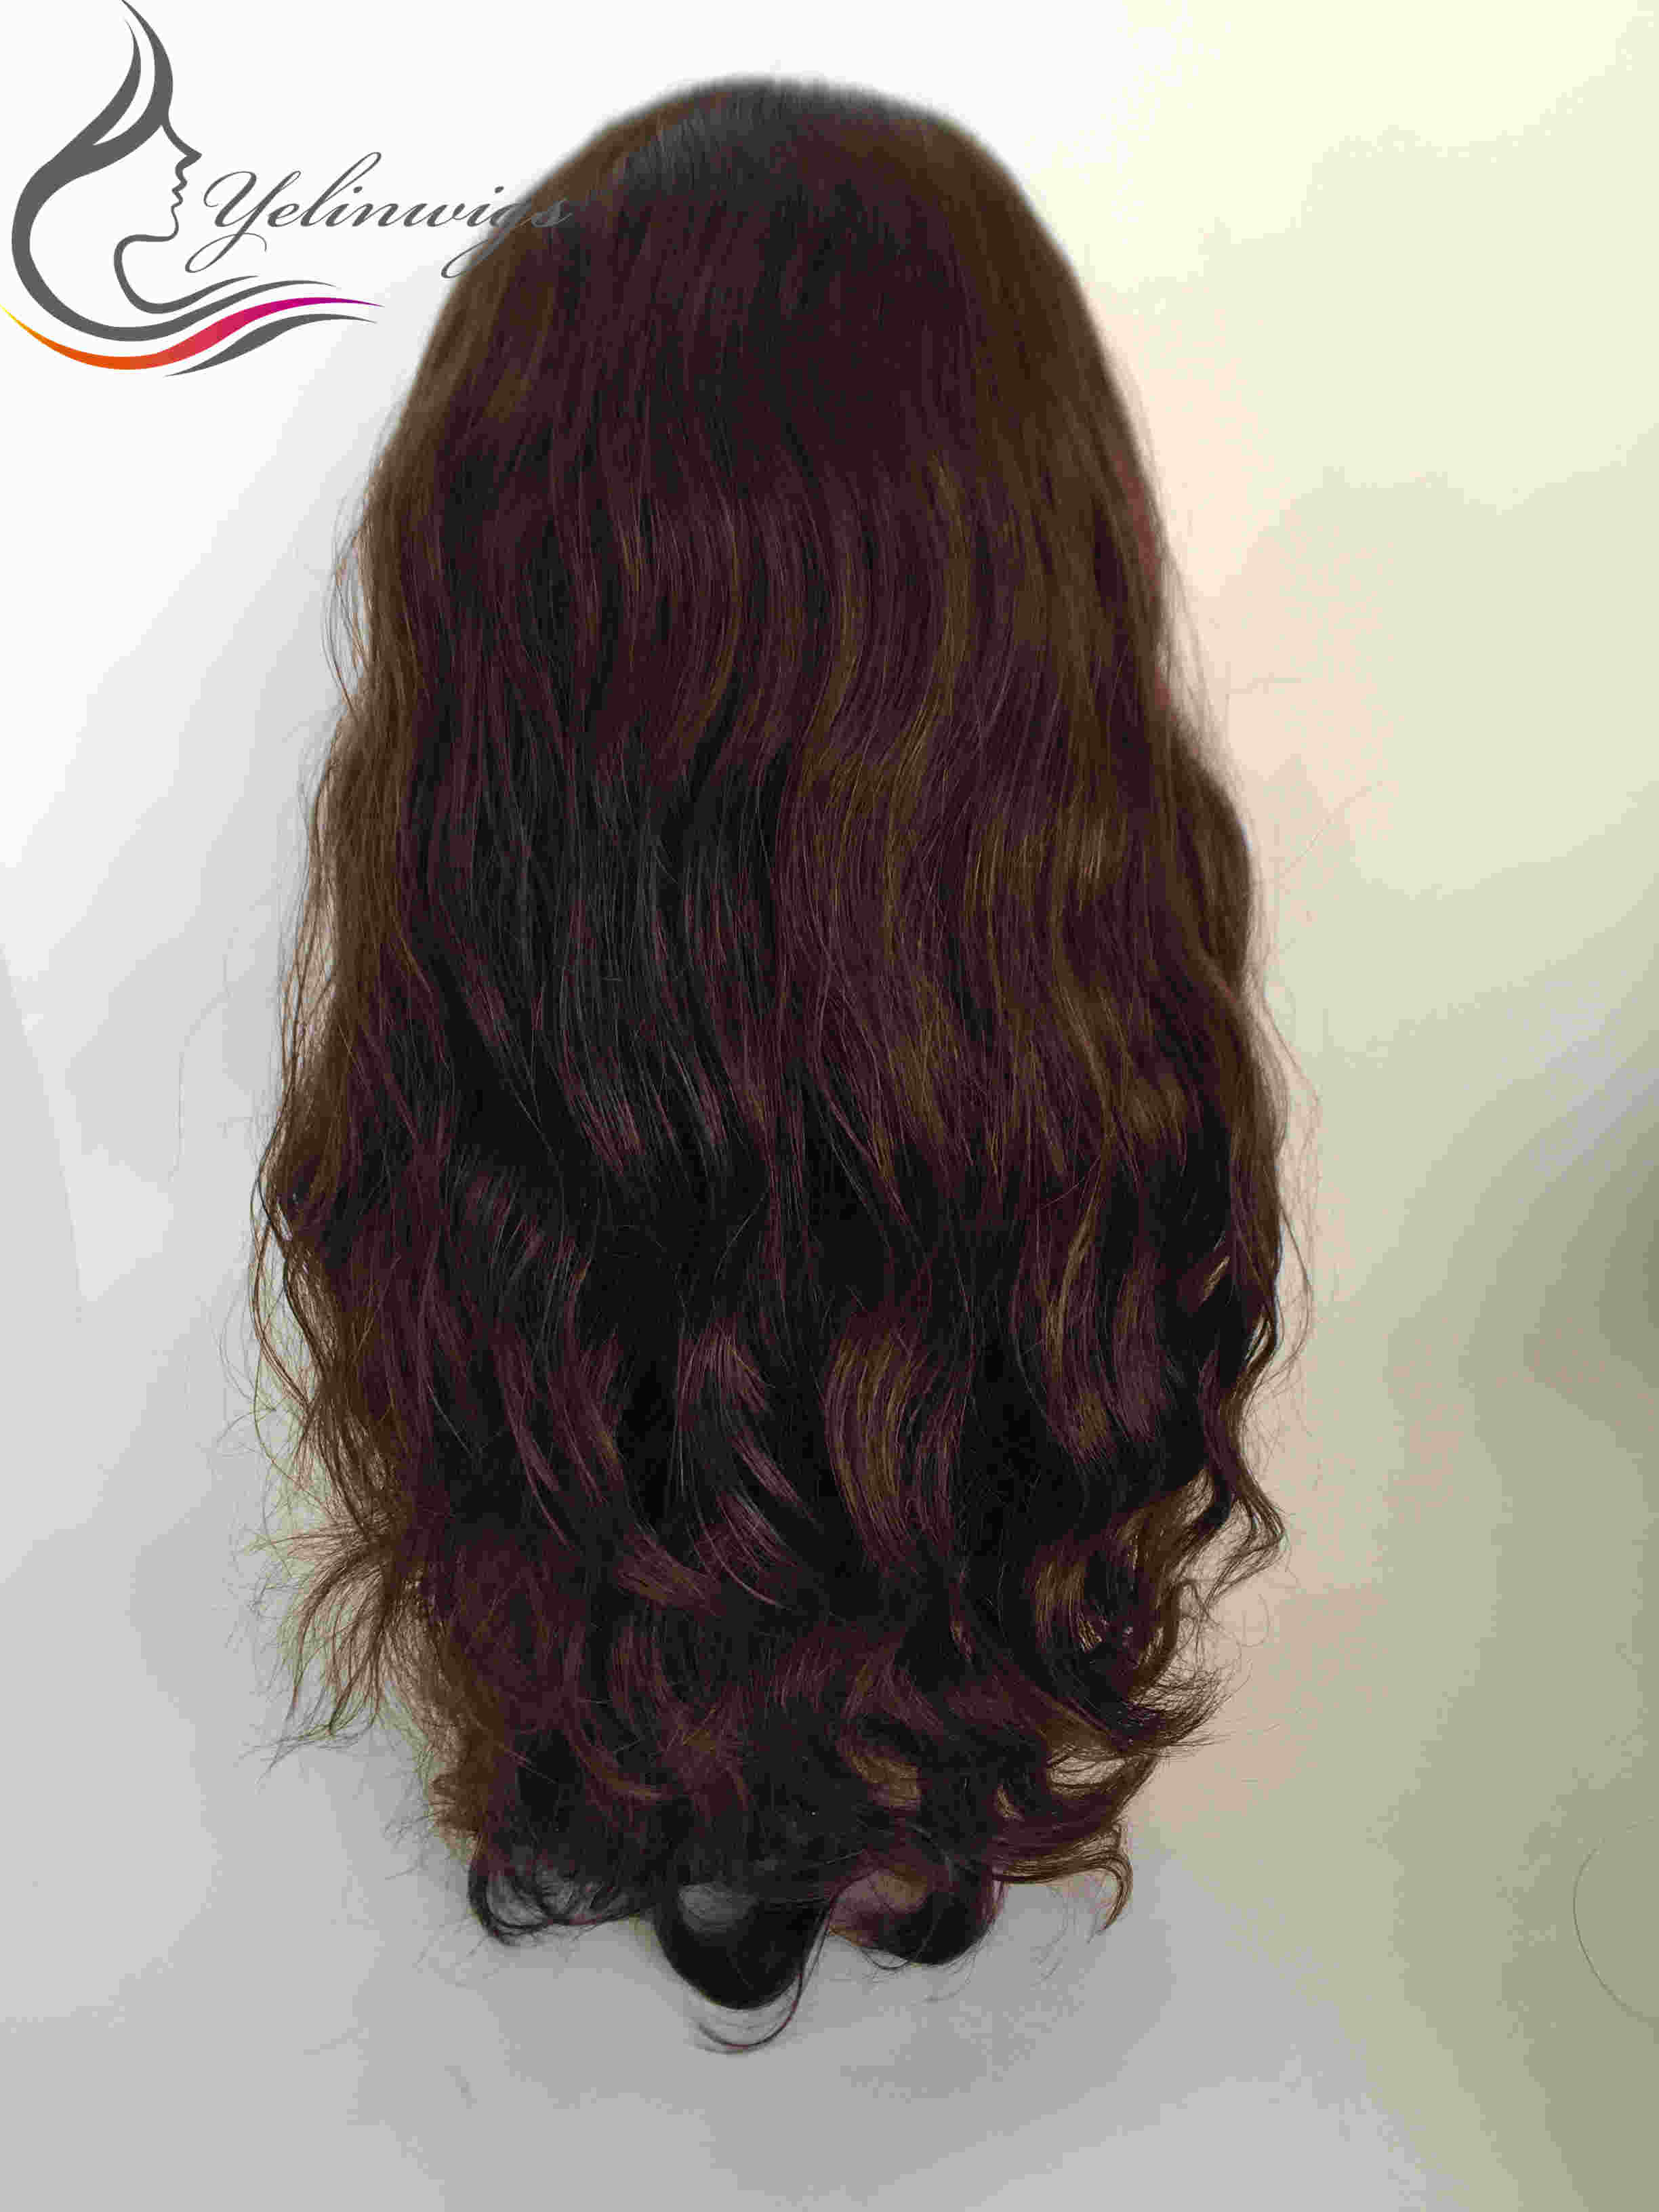 Stock Brazilian Hair Virgin Hair Jewish Cap Wig Kosher Wigs 4x4 Silk Top Wavy Hair Jewish Wig